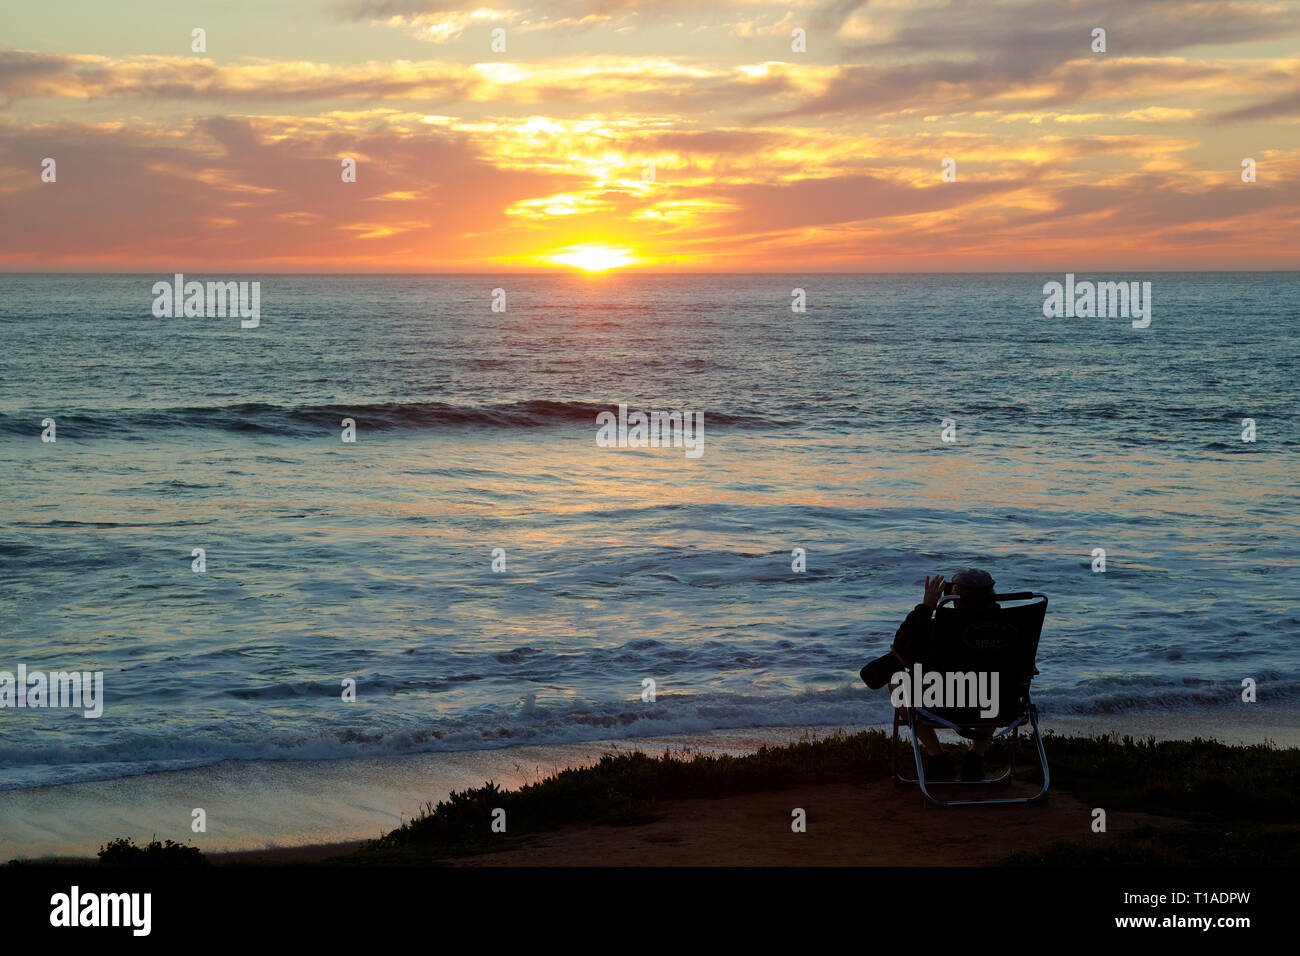 Person sitting in Lawn Chair on Bluff Watching Sunset over the Pacific Ocean - Stock Image